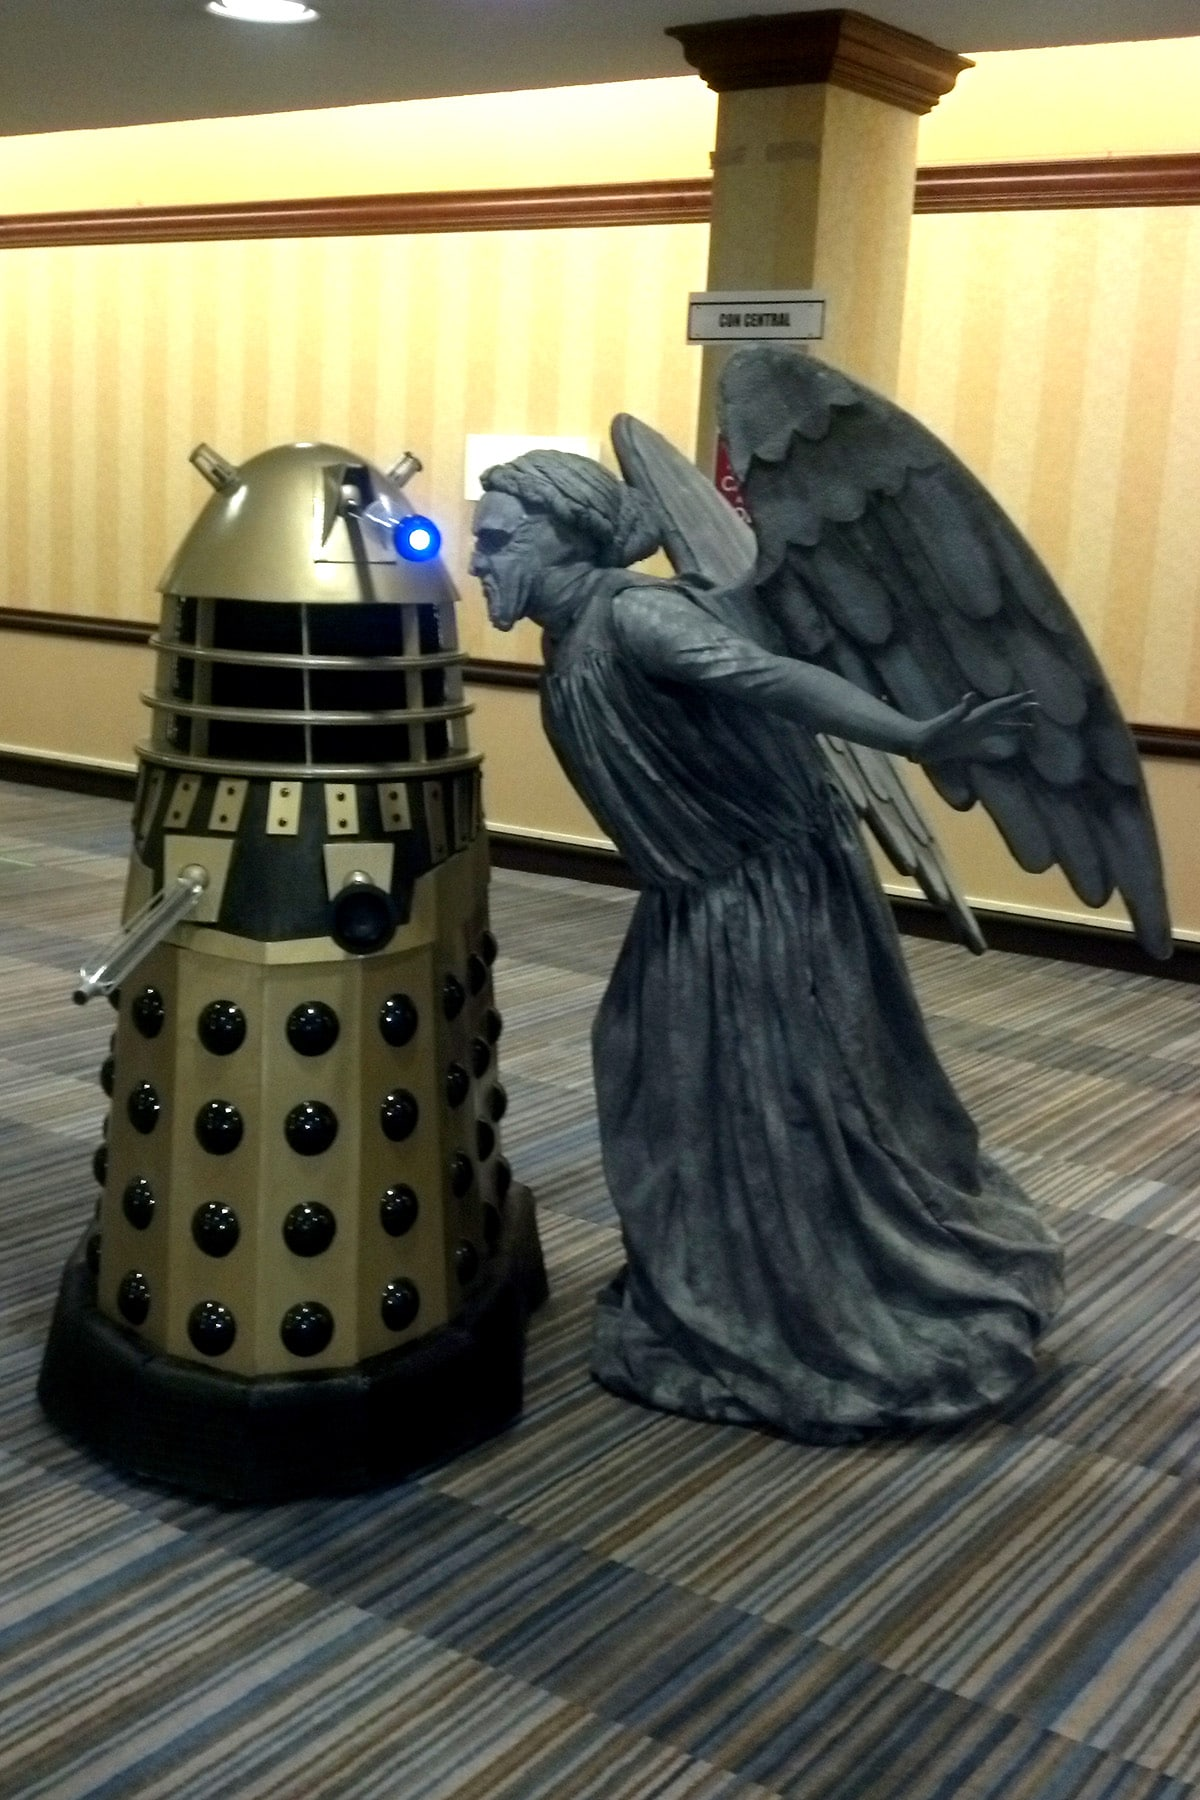 A cosplayer dressed as a Weeping Angel, leaning in to kiss a Dalek.